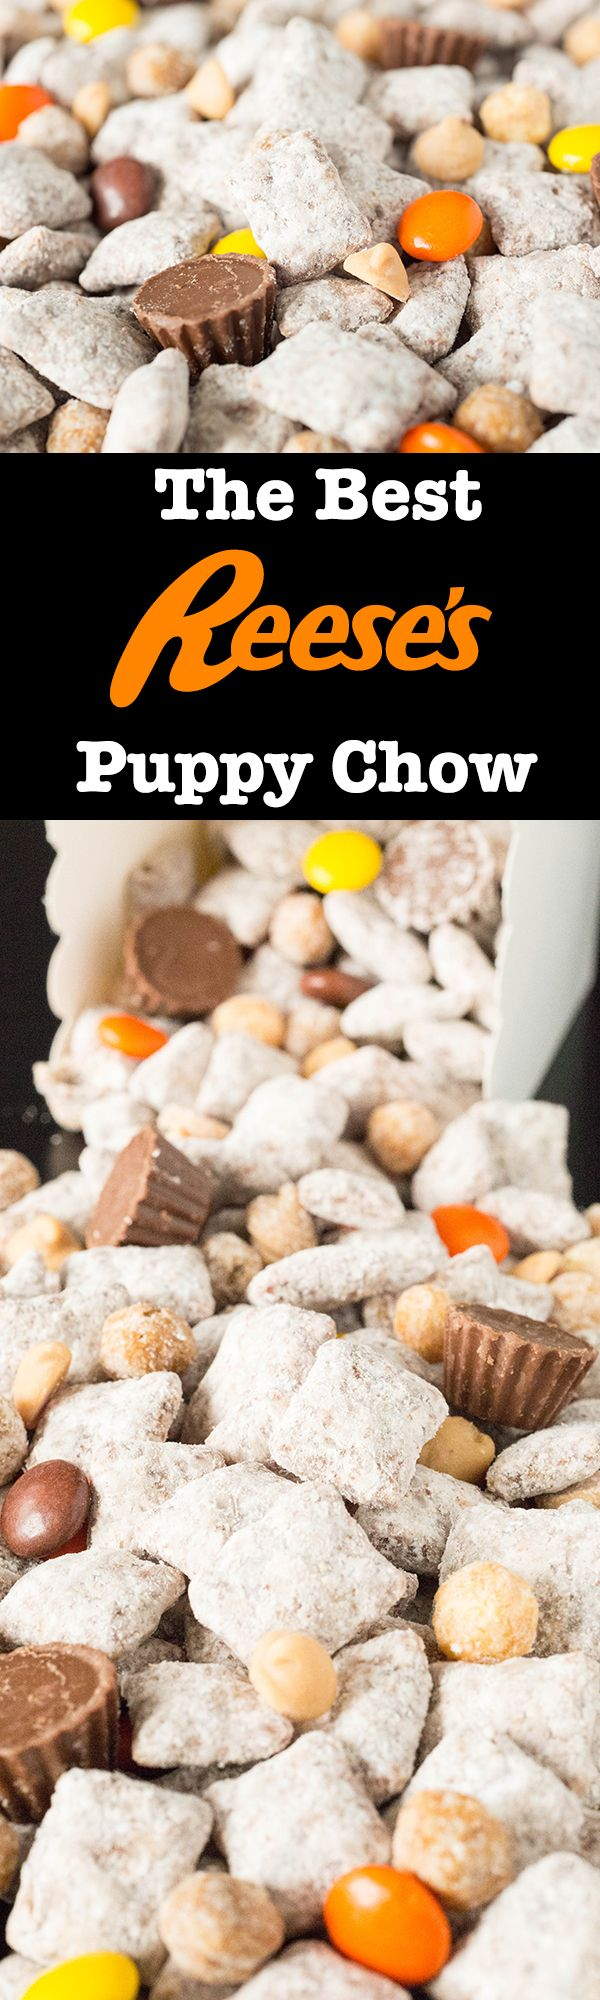 This Chocolate Peanut Butter Puppy Chow is an additive and